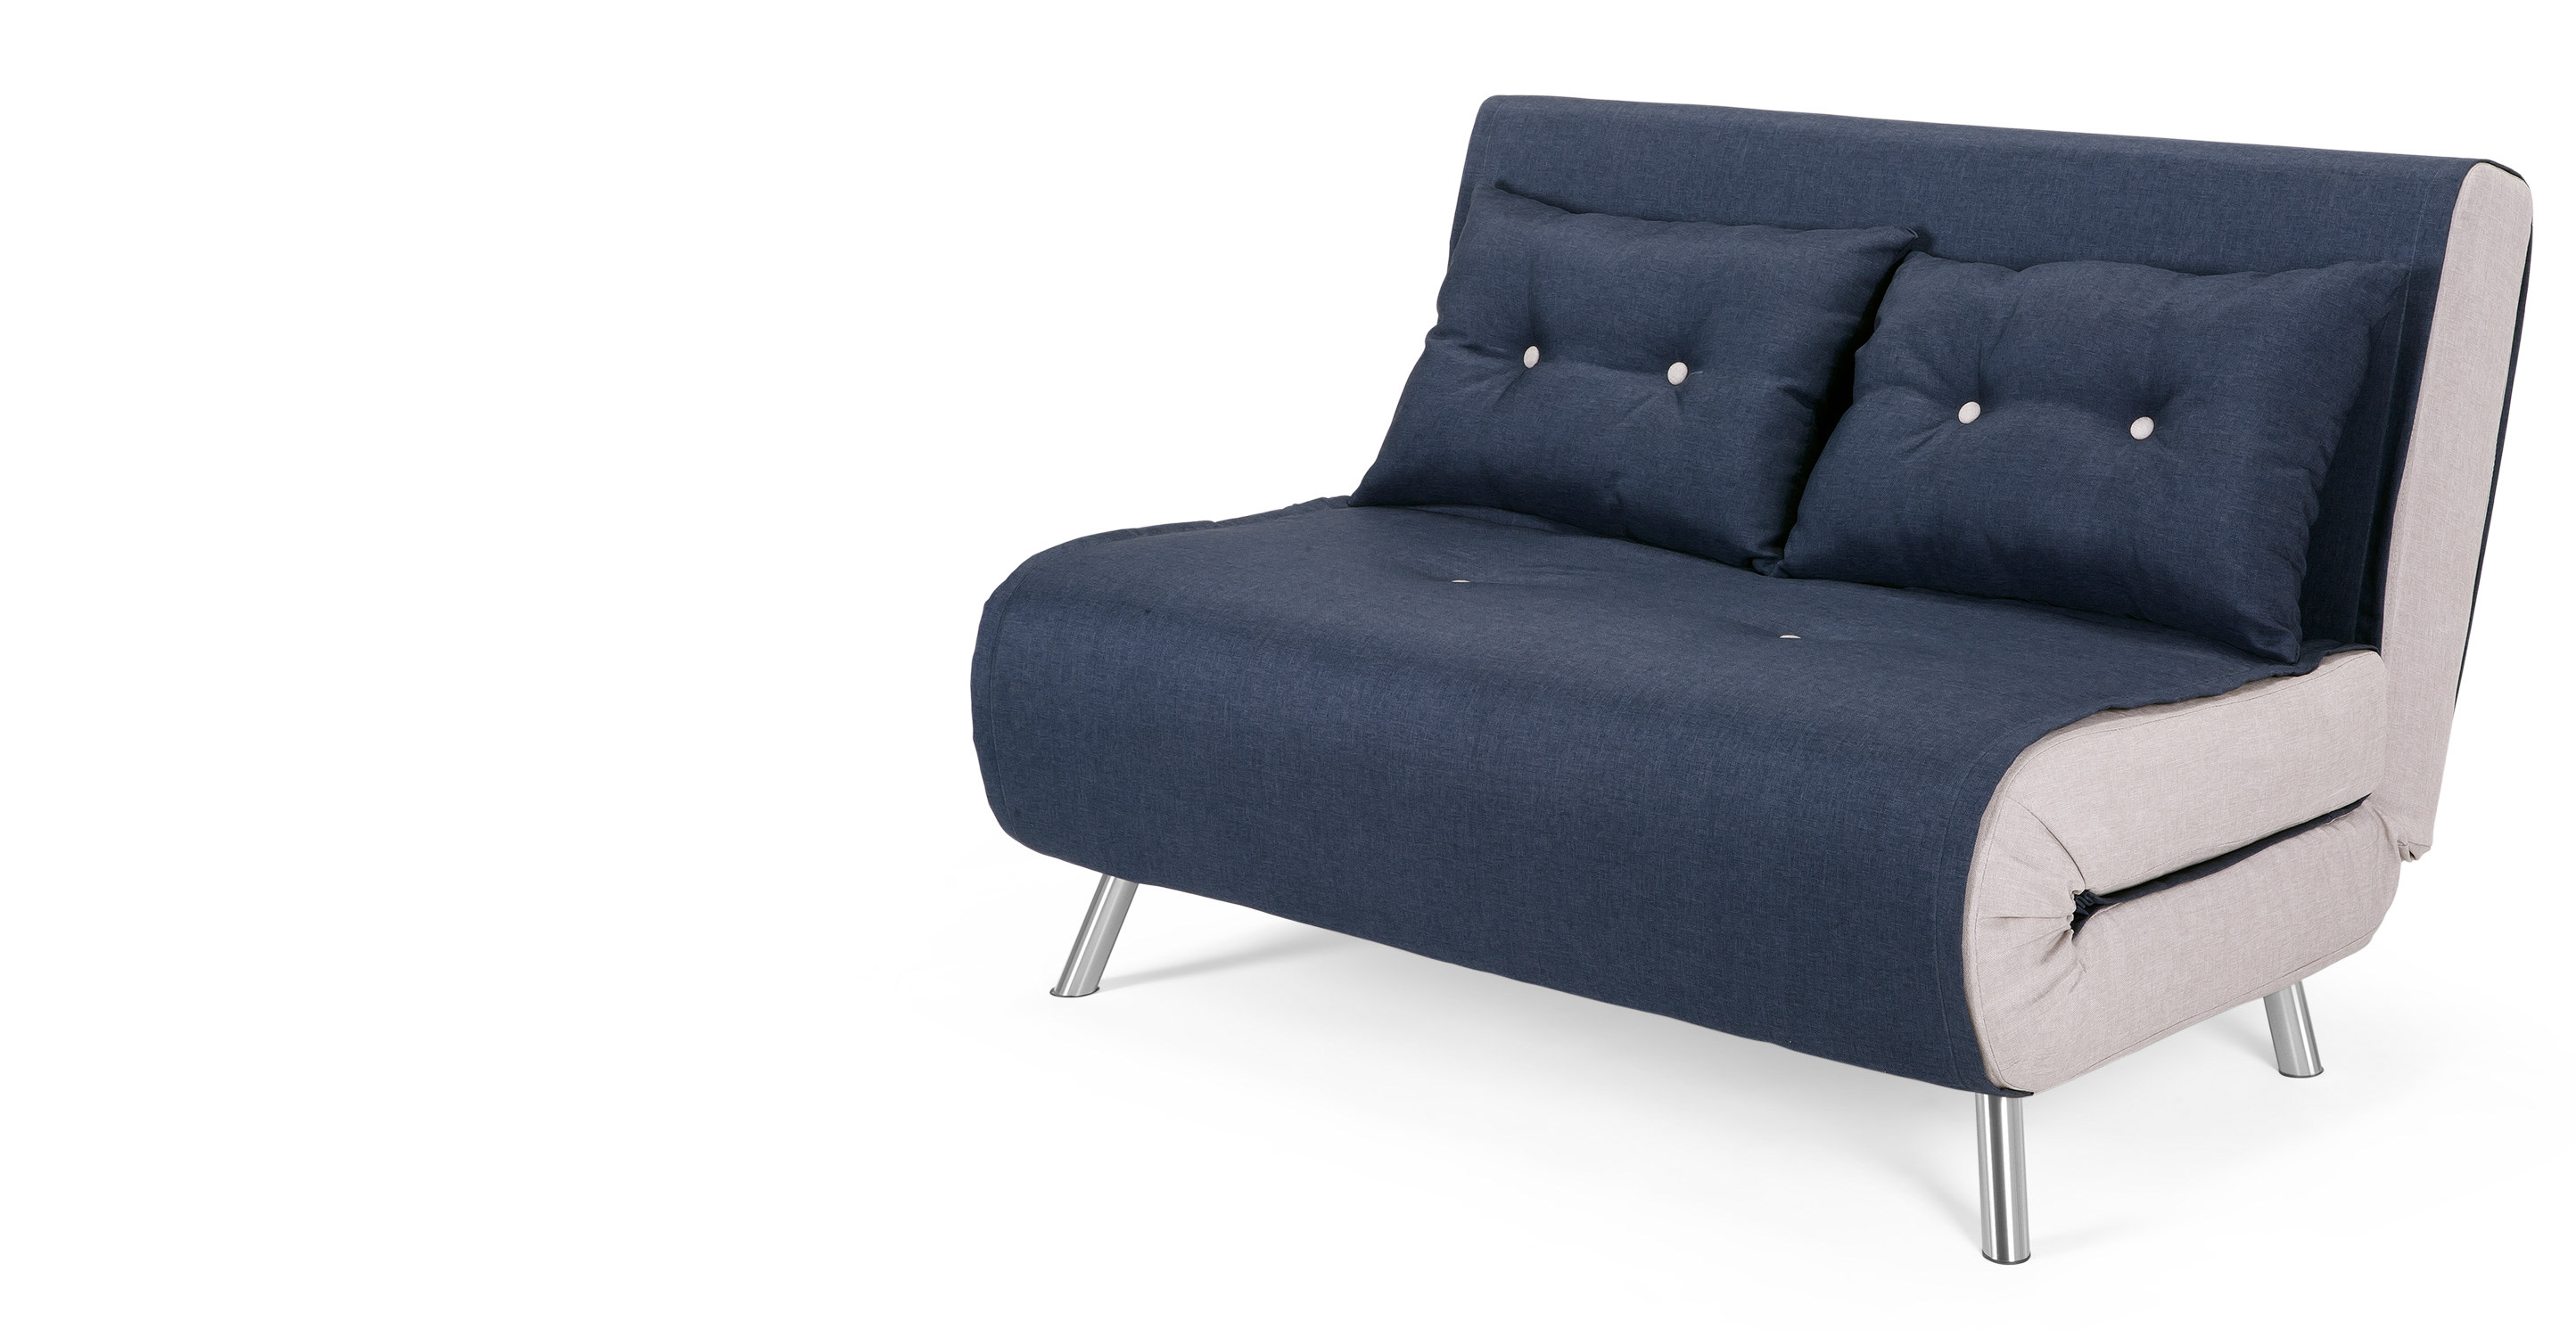 Haru small sofa bed in quartz blue Couches bed